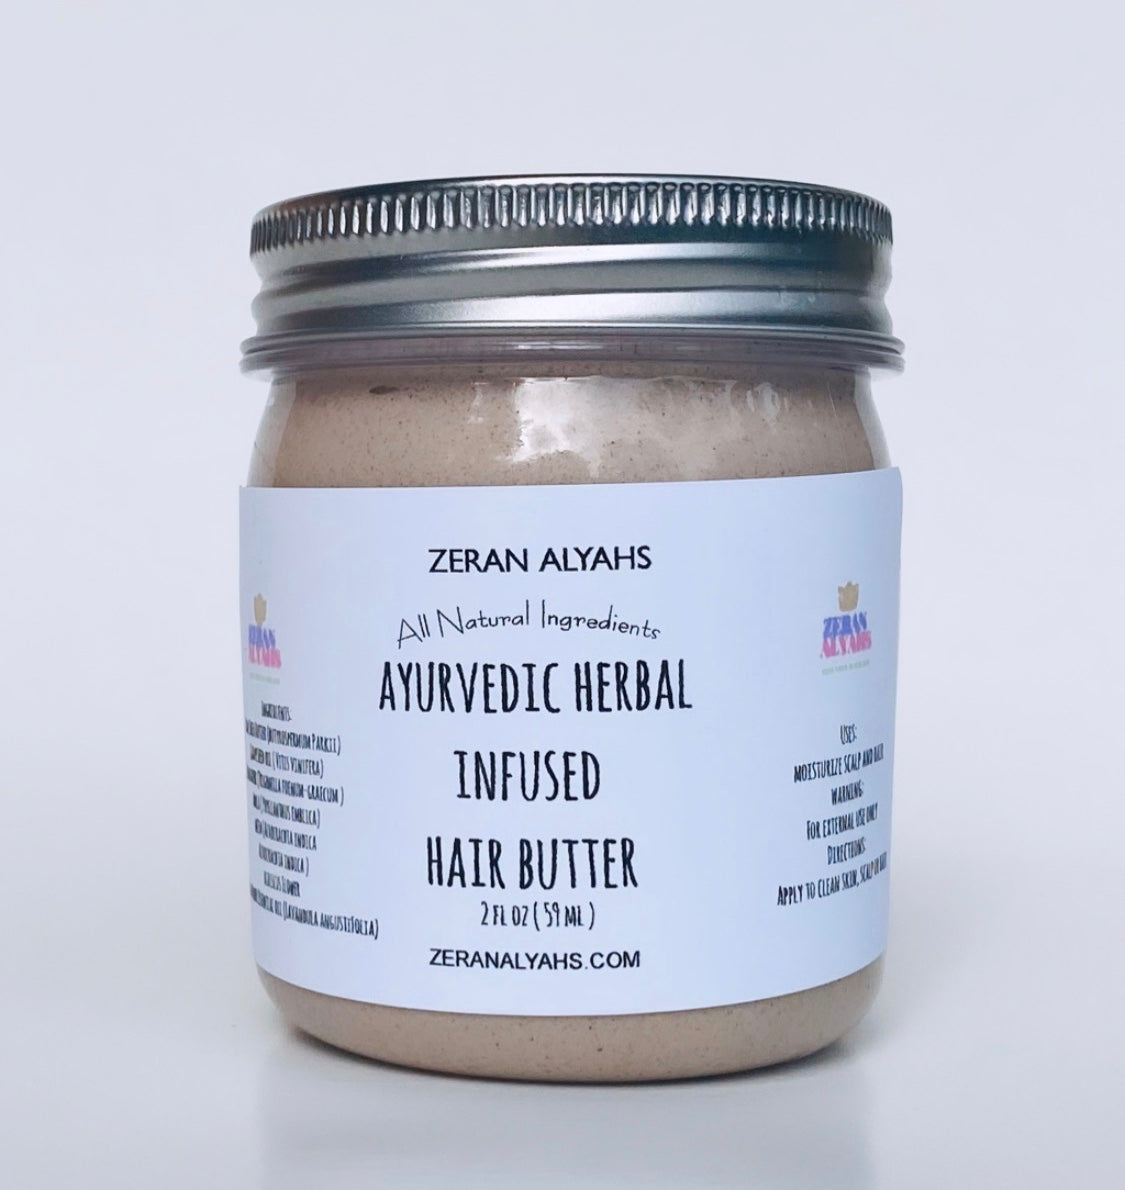 Ayurvedic Herbal Hair Moisturizing Butter